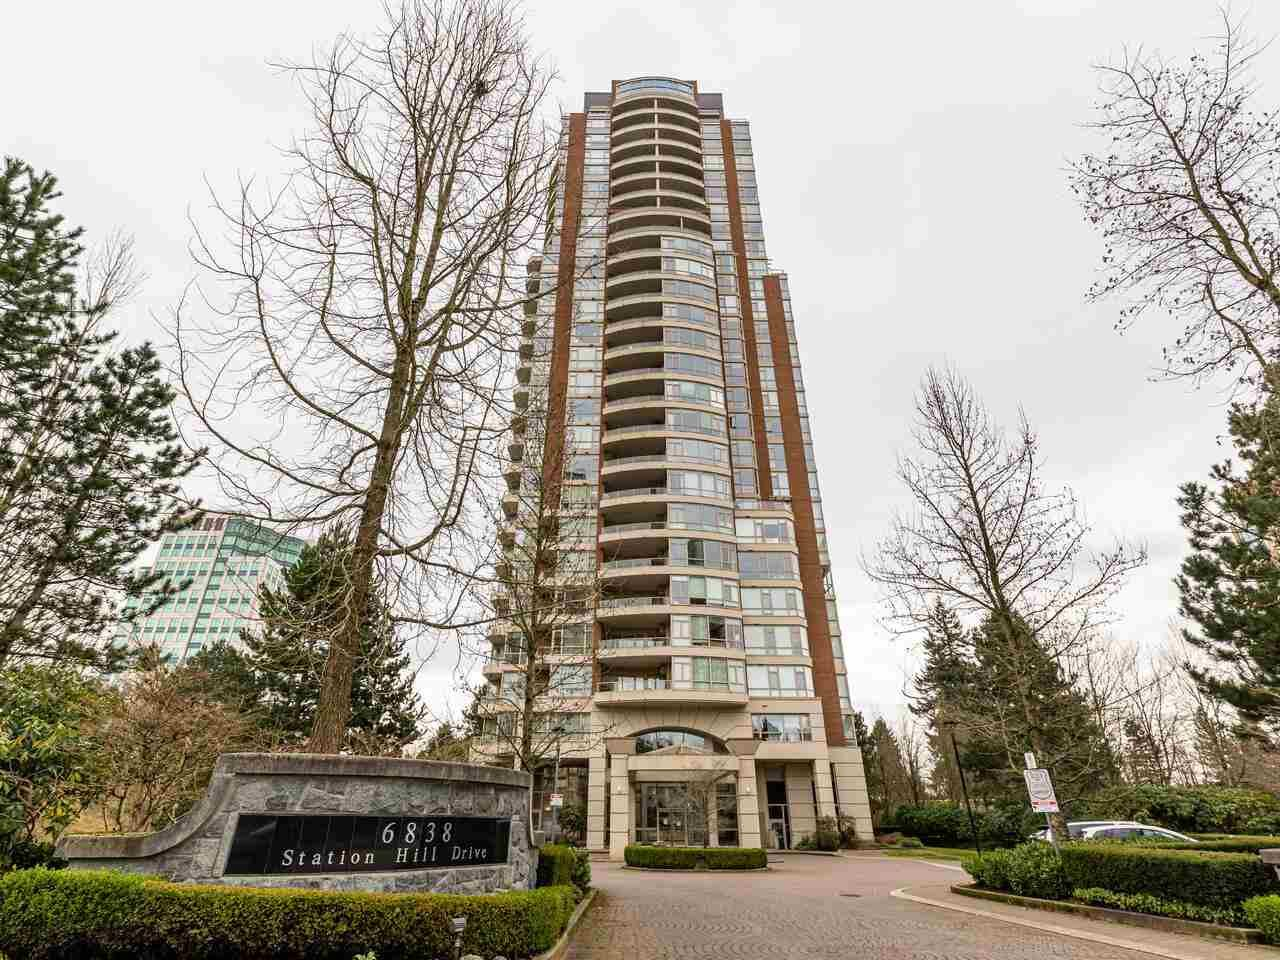 """Main Photo: 1804 6838 STATION HILL Drive in Burnaby: South Slope Condo for sale in """"THE BELGRAVIA"""" (Burnaby South)  : MLS®# R2544258"""